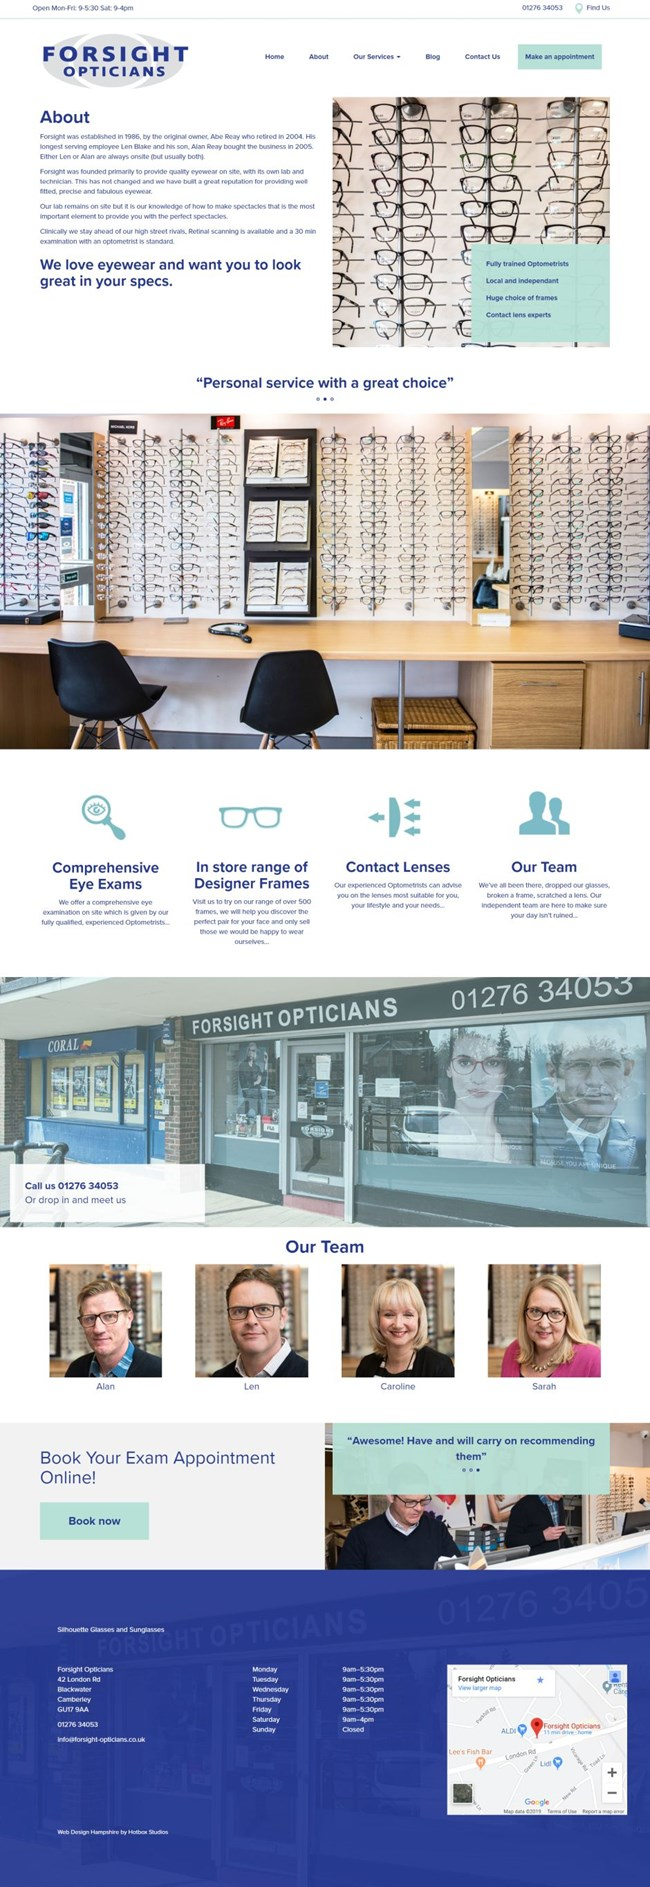 Forsight Opticians Wordpress Web Design SP002 About